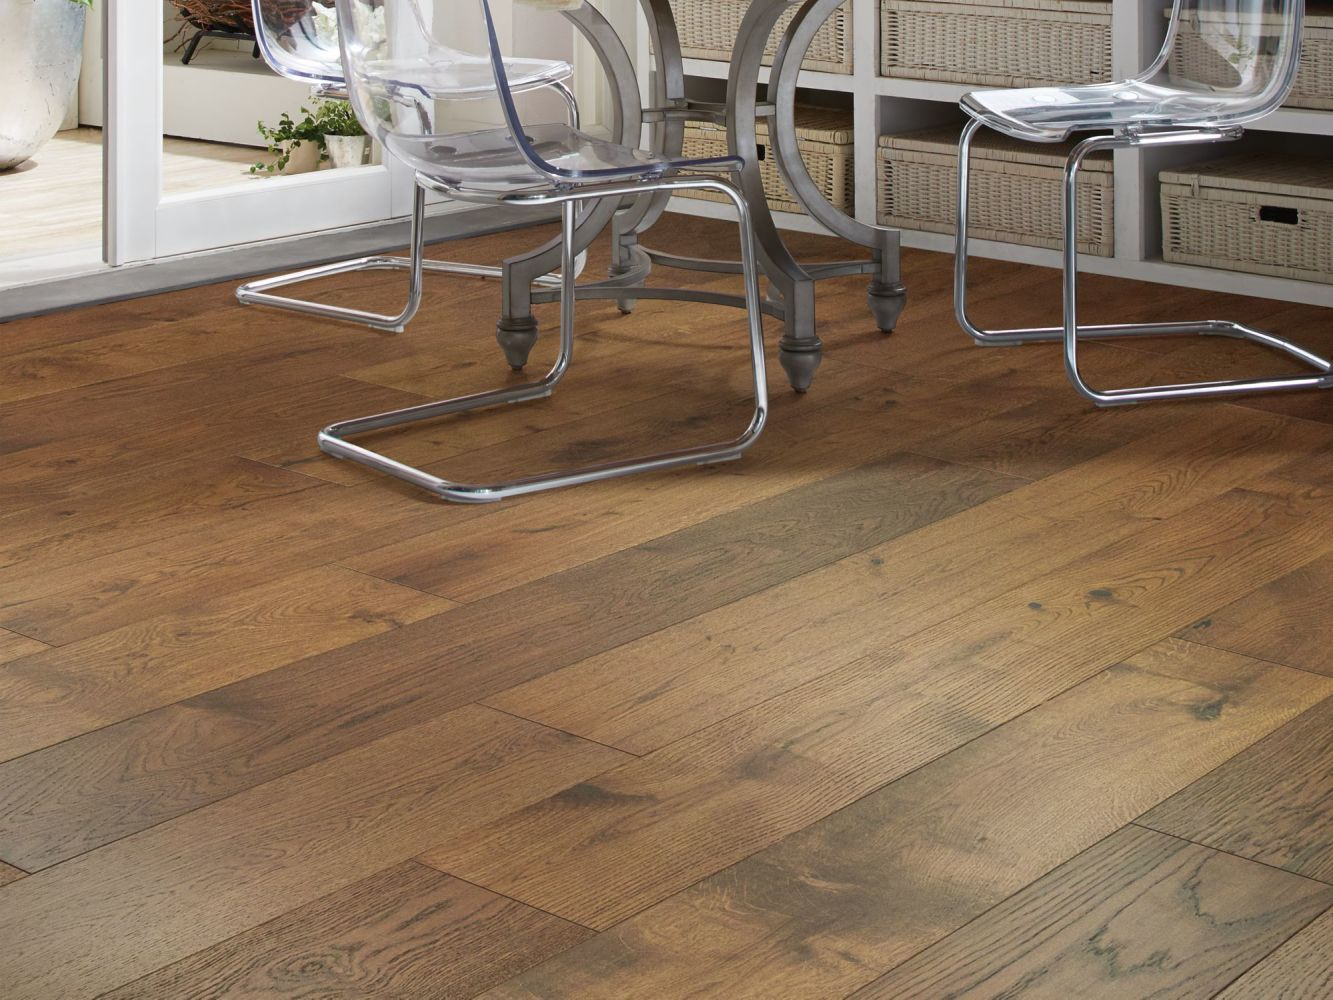 Shaw Floors Floorte Exquisite Warmed Oak 02040_250RH